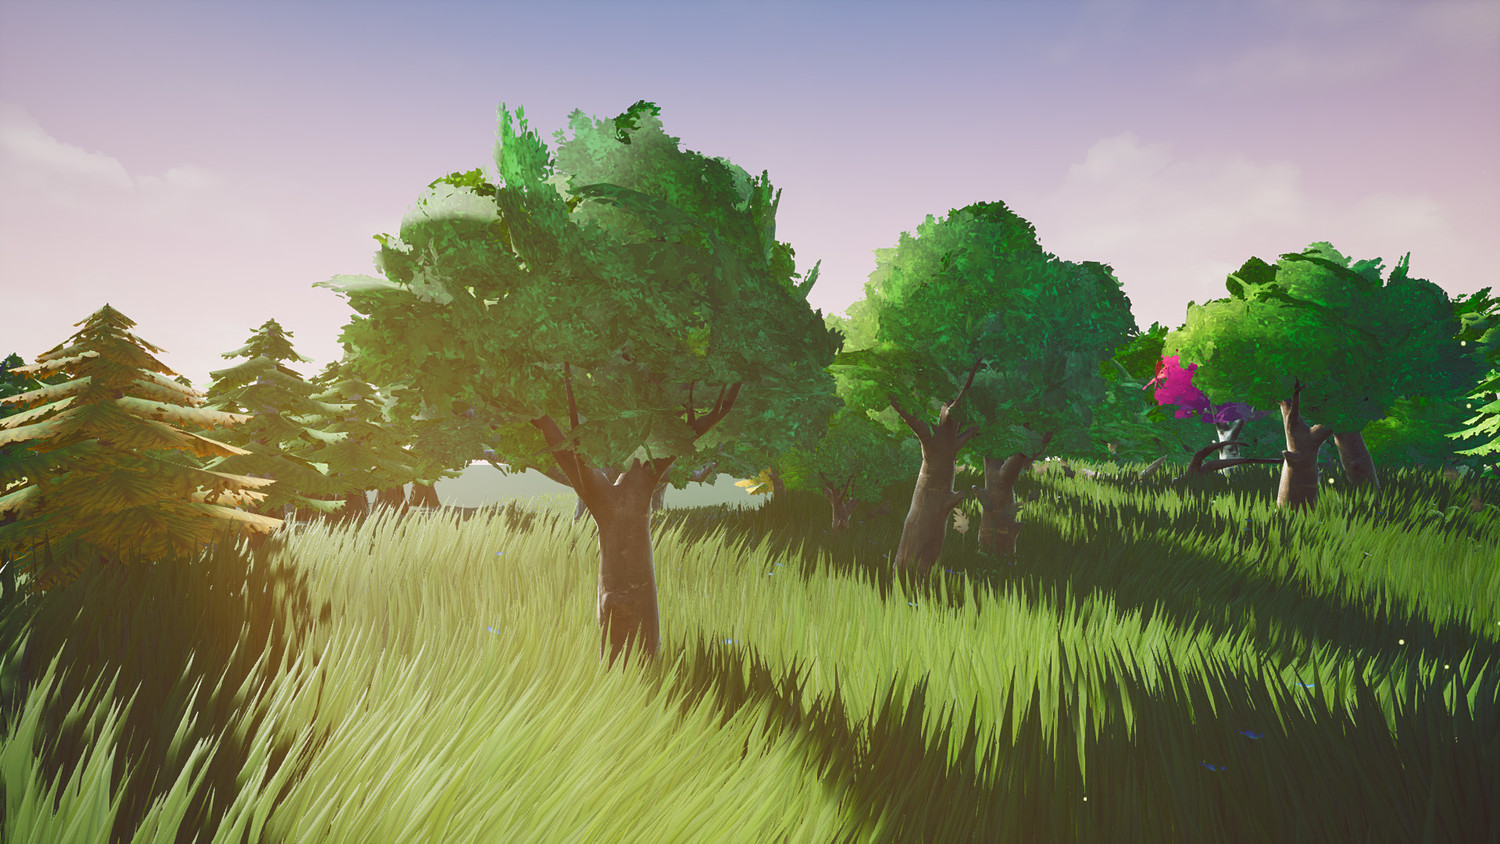 Stylized Foliage And Trees [ Unreal Engine 4 ]